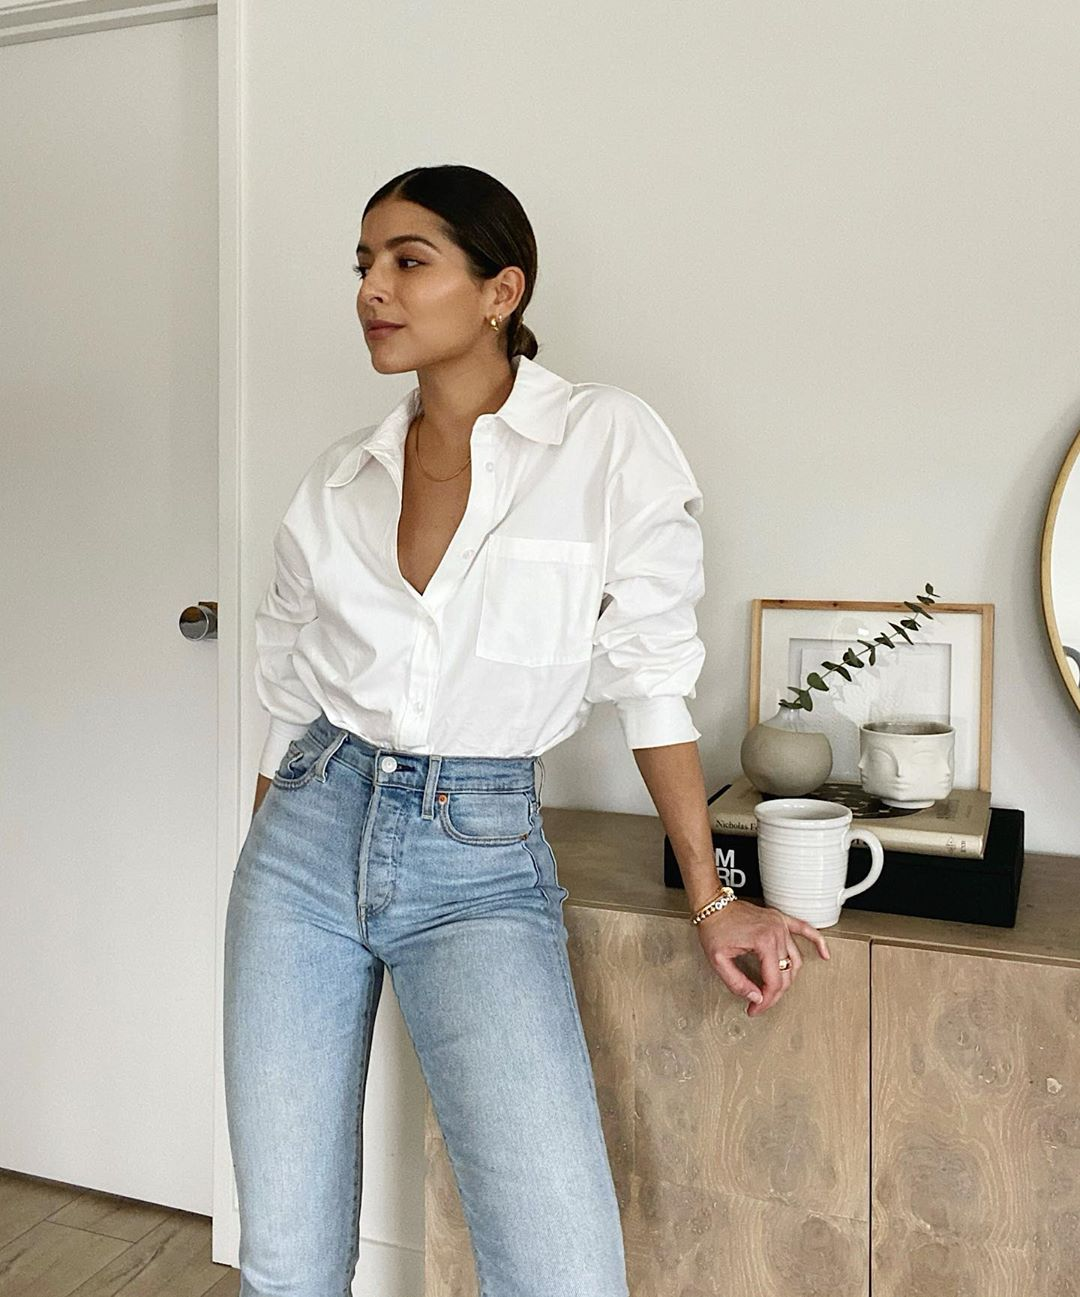 Classic Fall Oufit Combo — Pam Arias in a white button-down shirt and straight-leg jeans